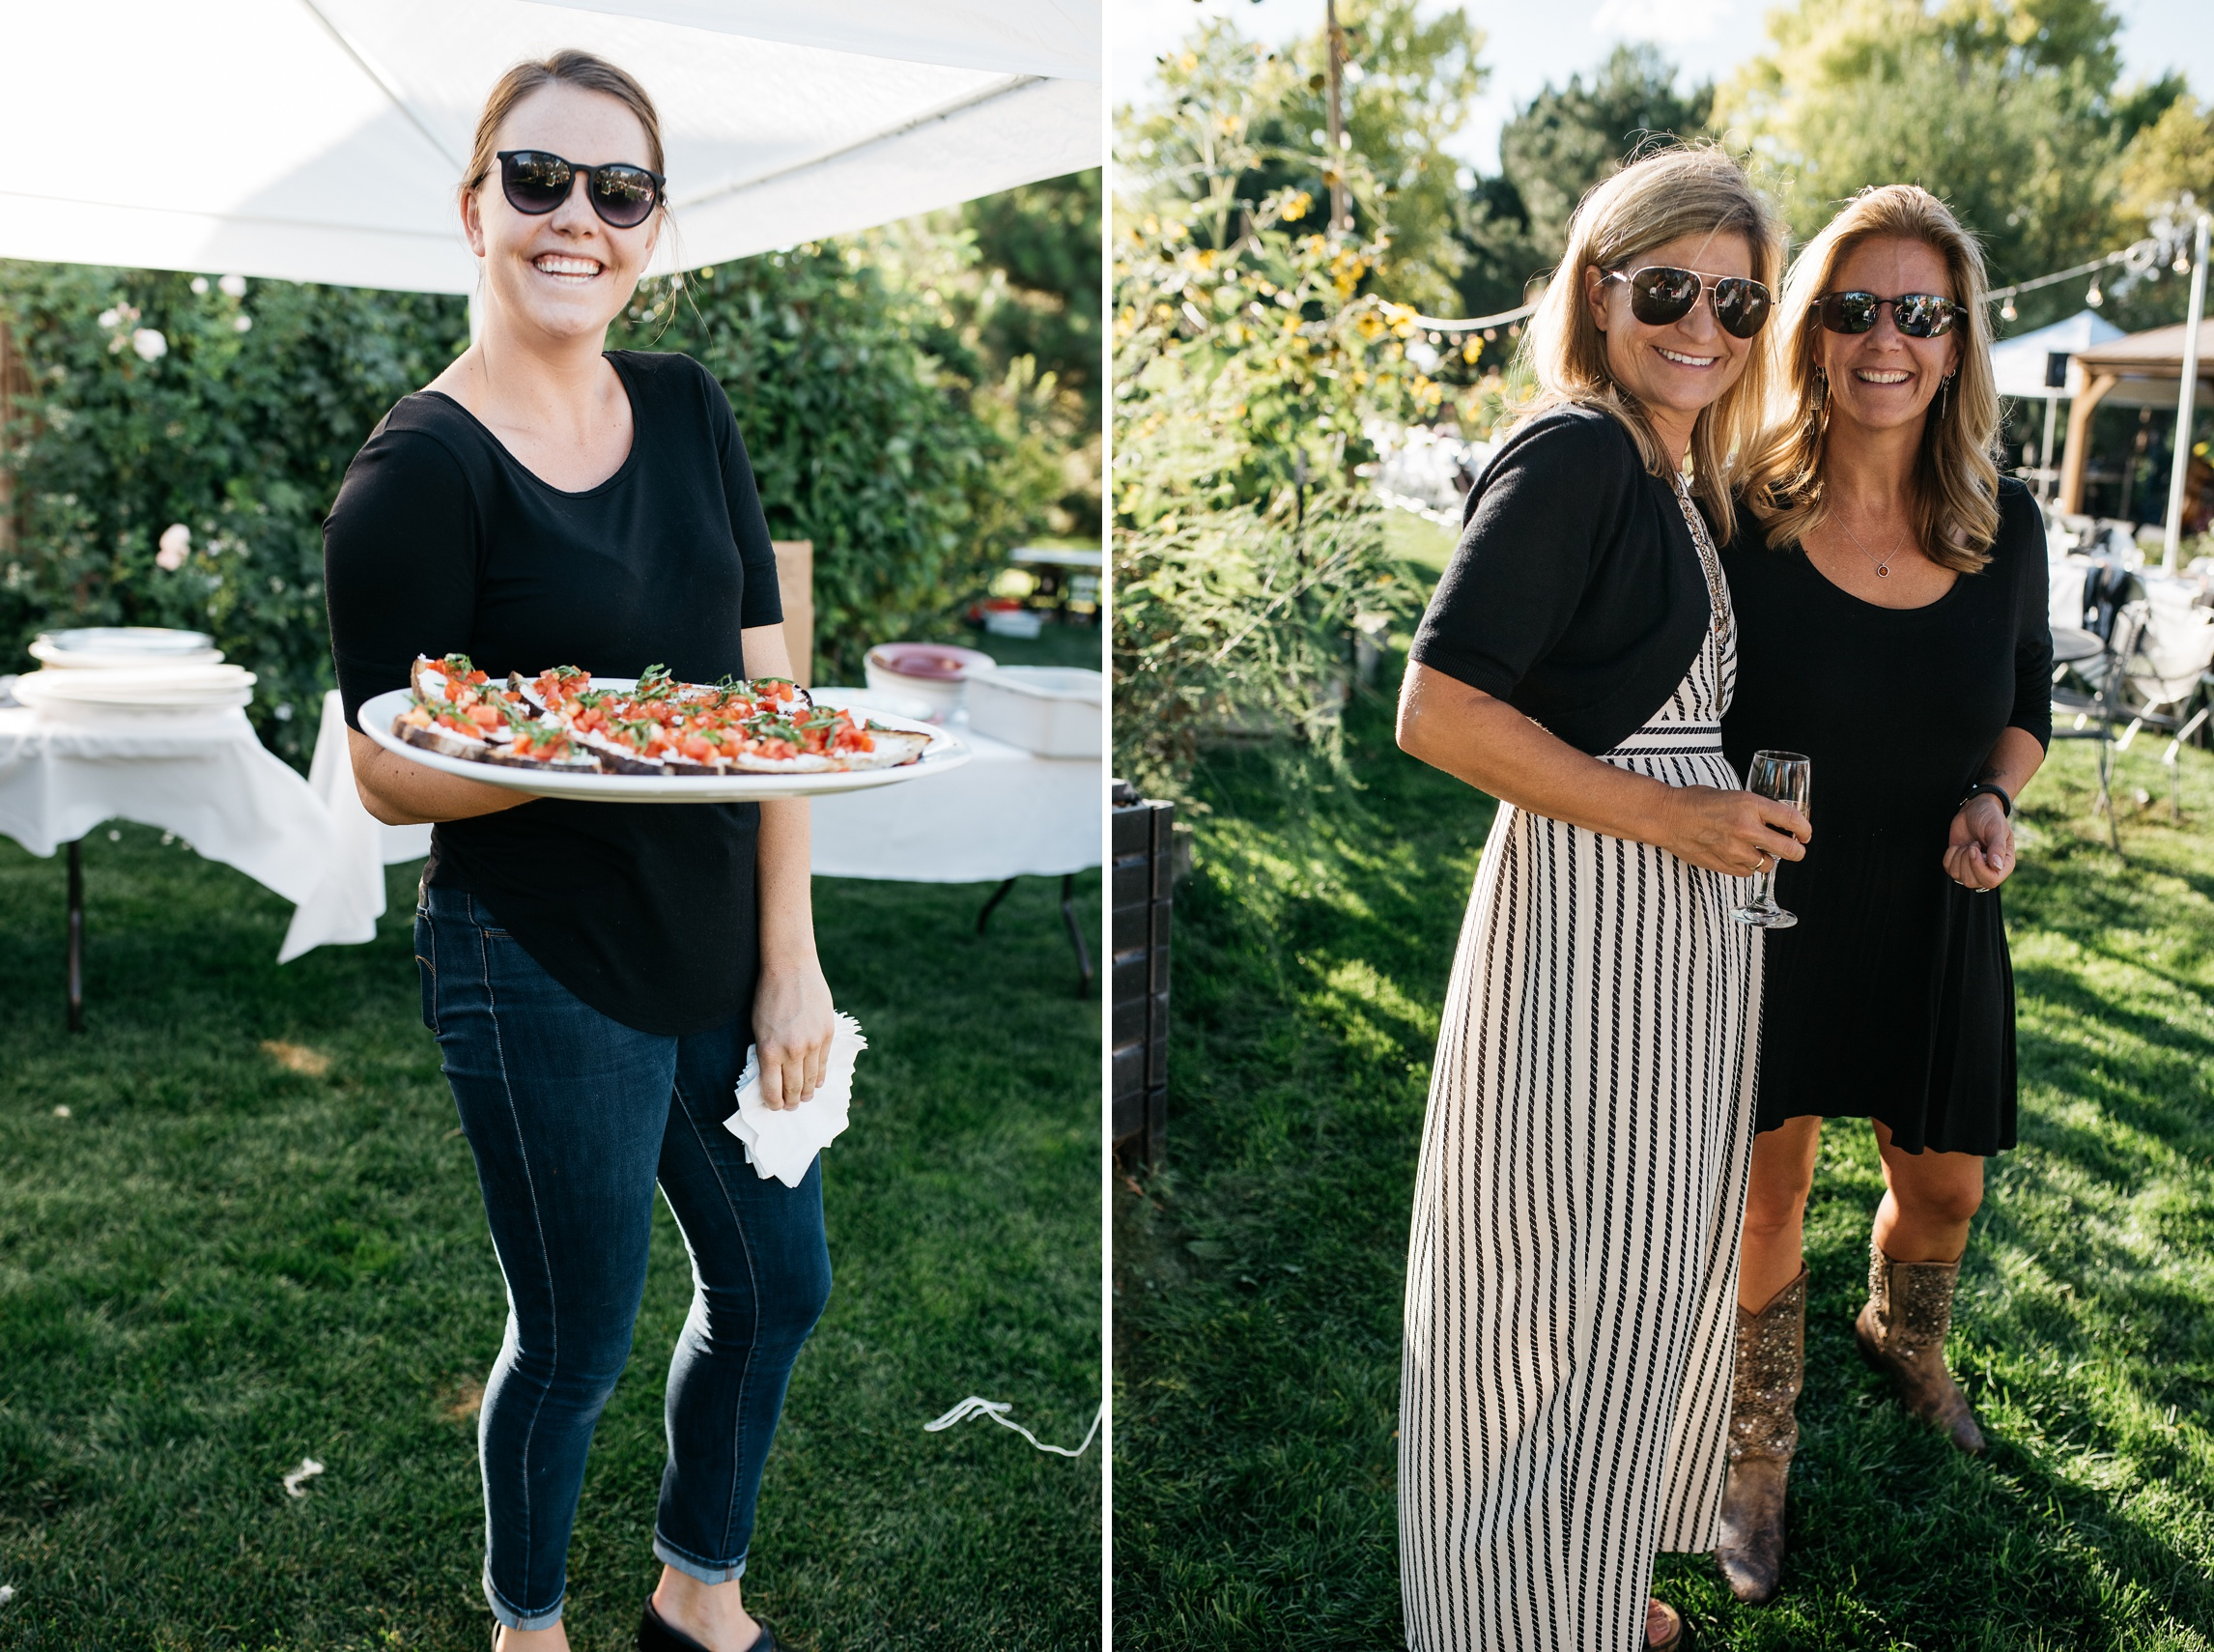 Happy people at the Fortified Collaborations Mishawaka 100 Year Harvest Farm Dinner at Grant Farms CSA outside of Fort Collins, Colorado. Event photography by Sonja Salzburg of Sonja K Photography.